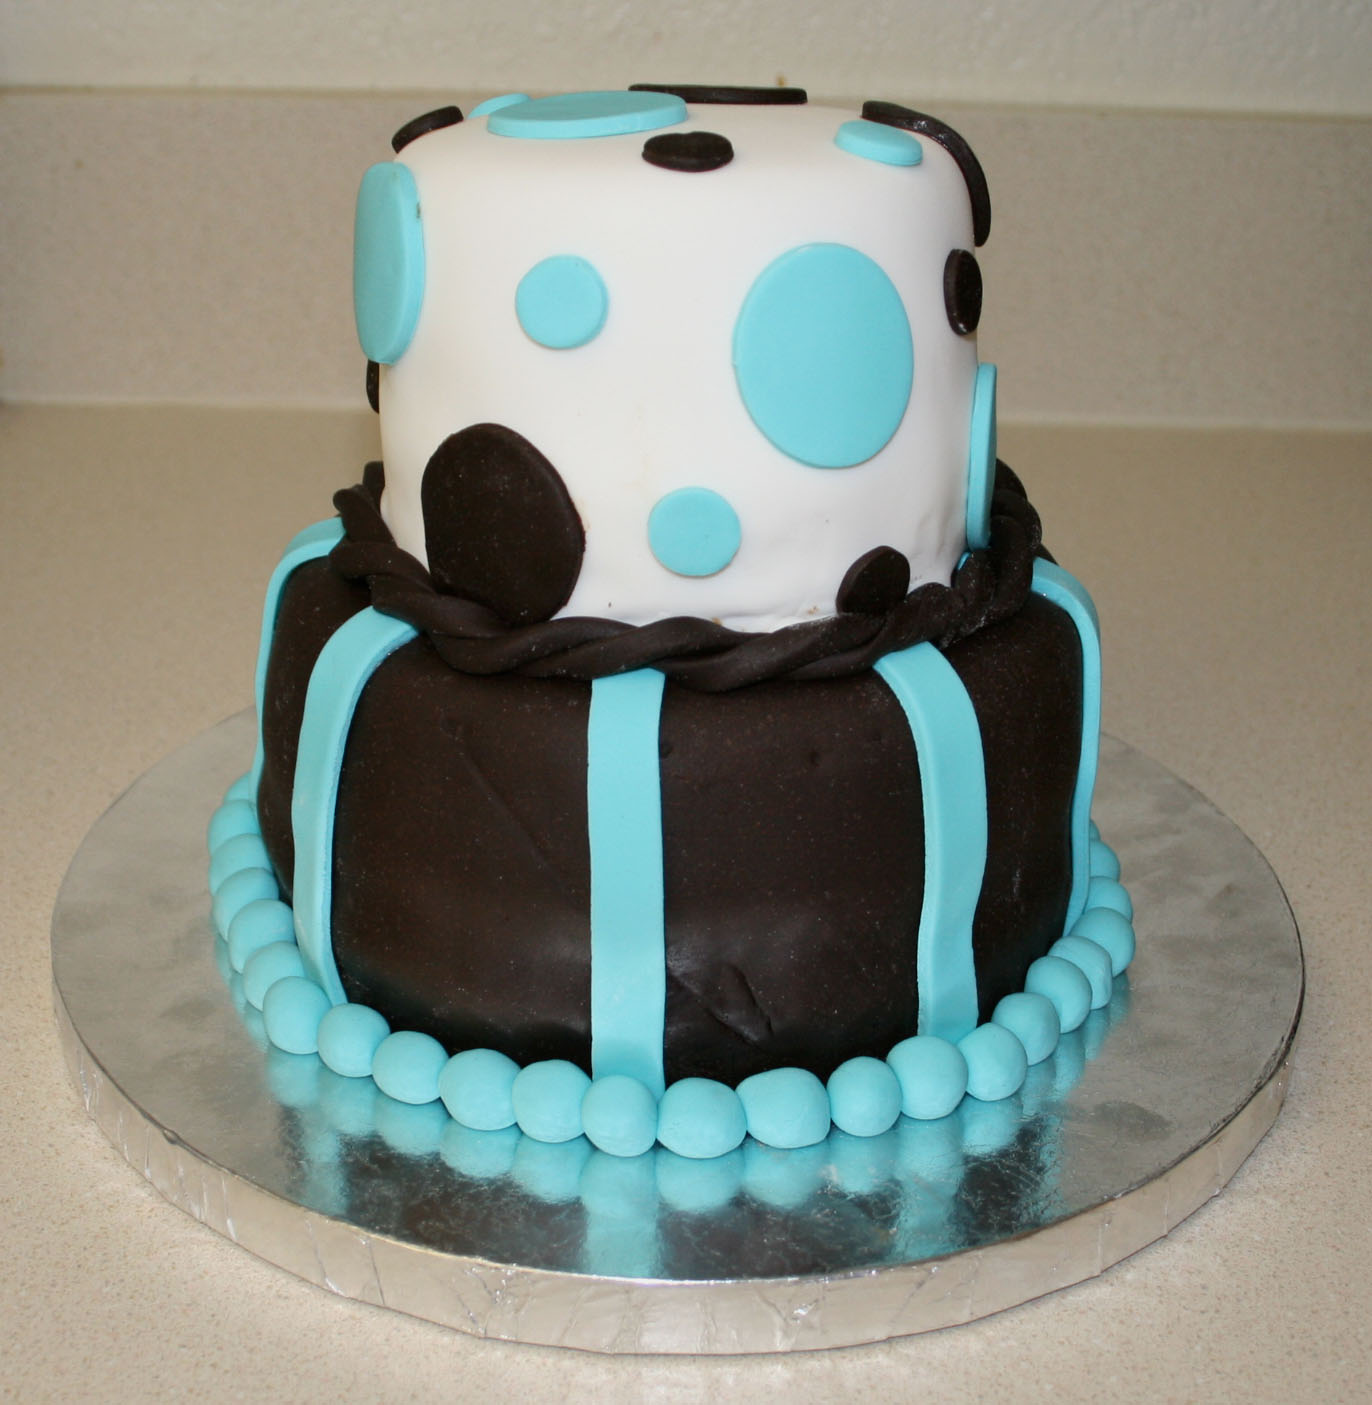 fondant cakes ideas for birthdays